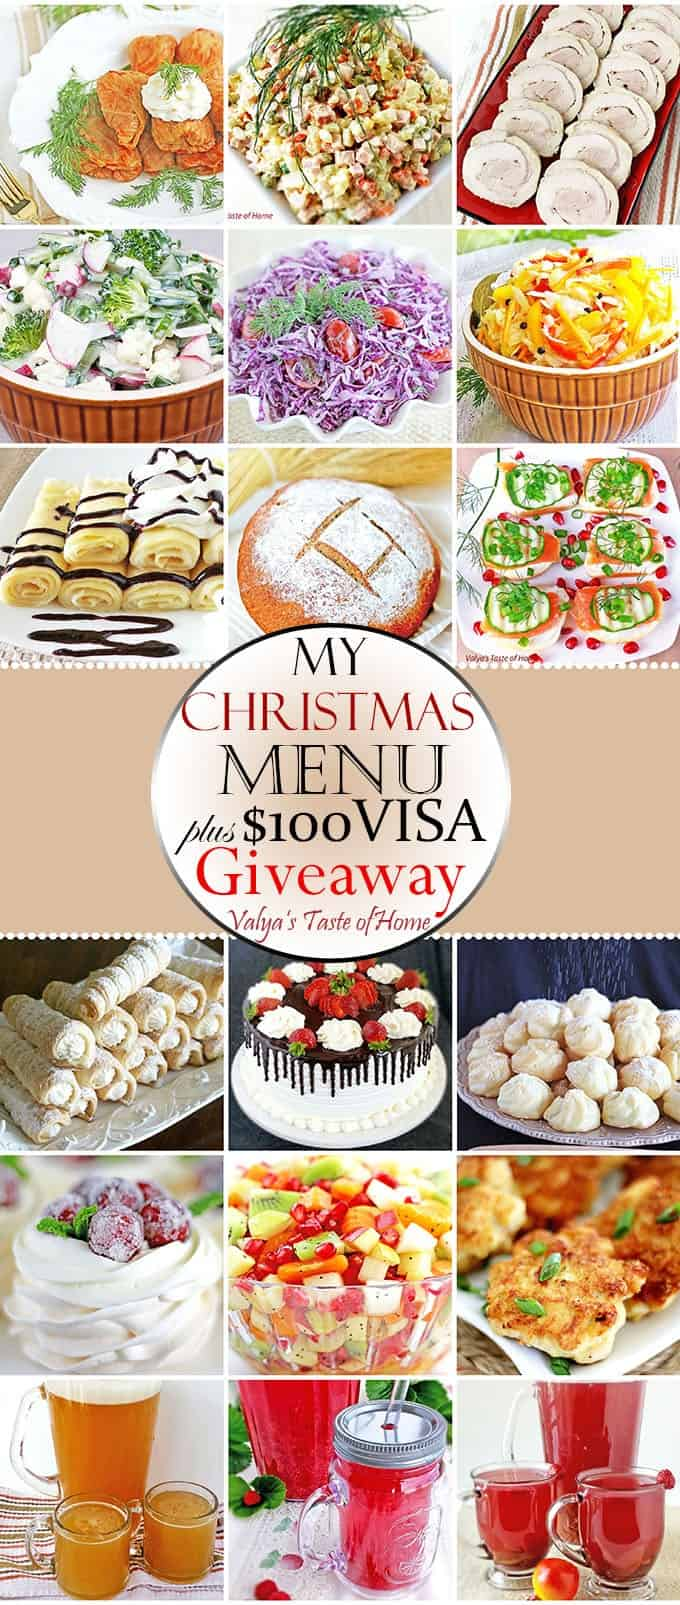 My 2016 Christmas Menu + $100 Visa Giveaway!